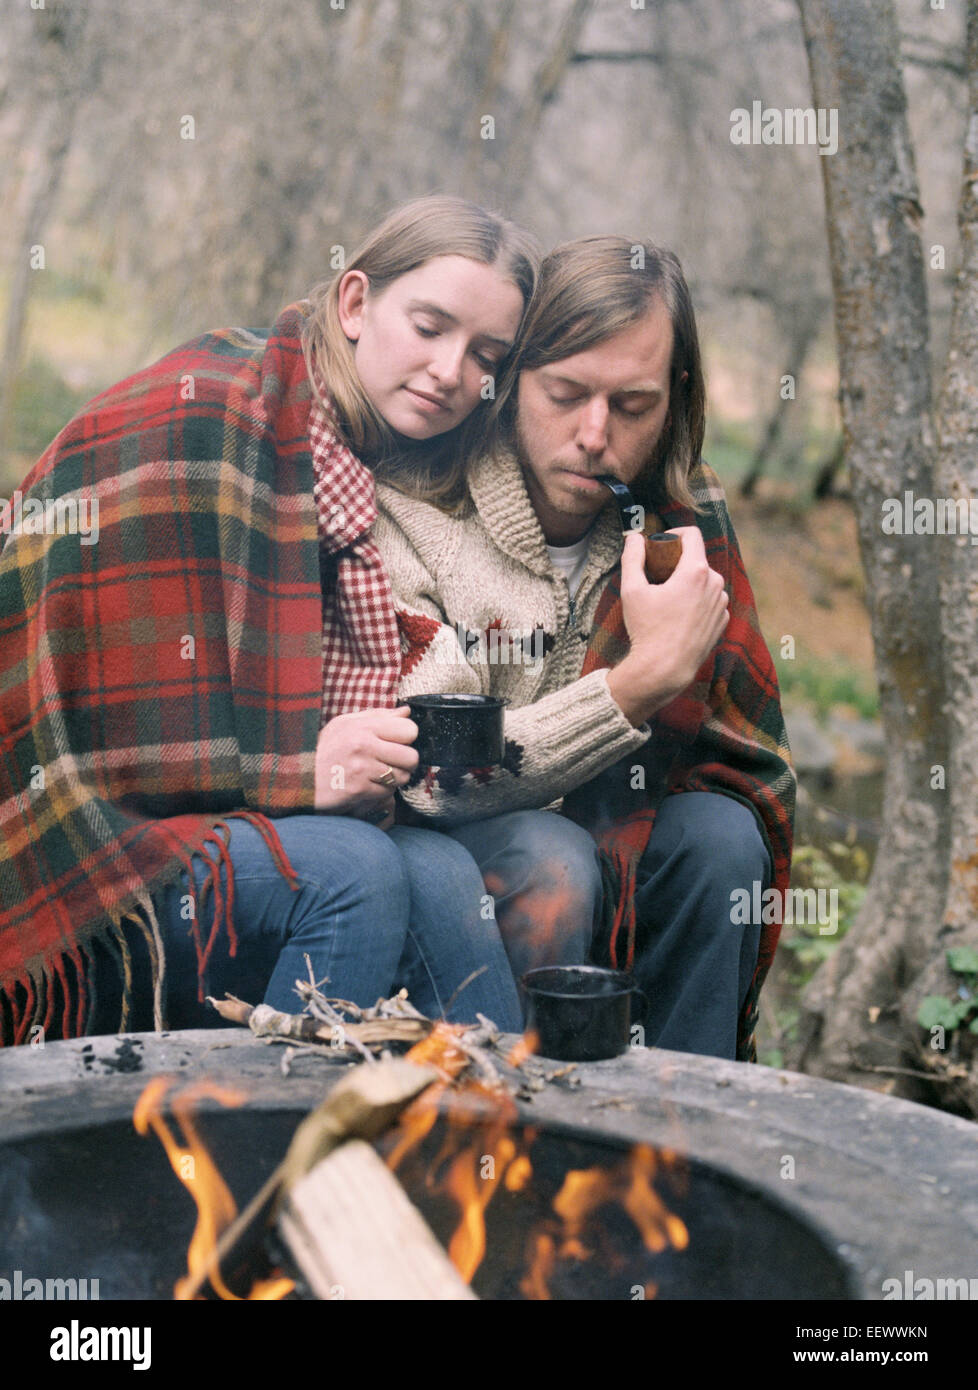 Young couple sitting by a fire pit, wrapped in a blanket. - Stock Image